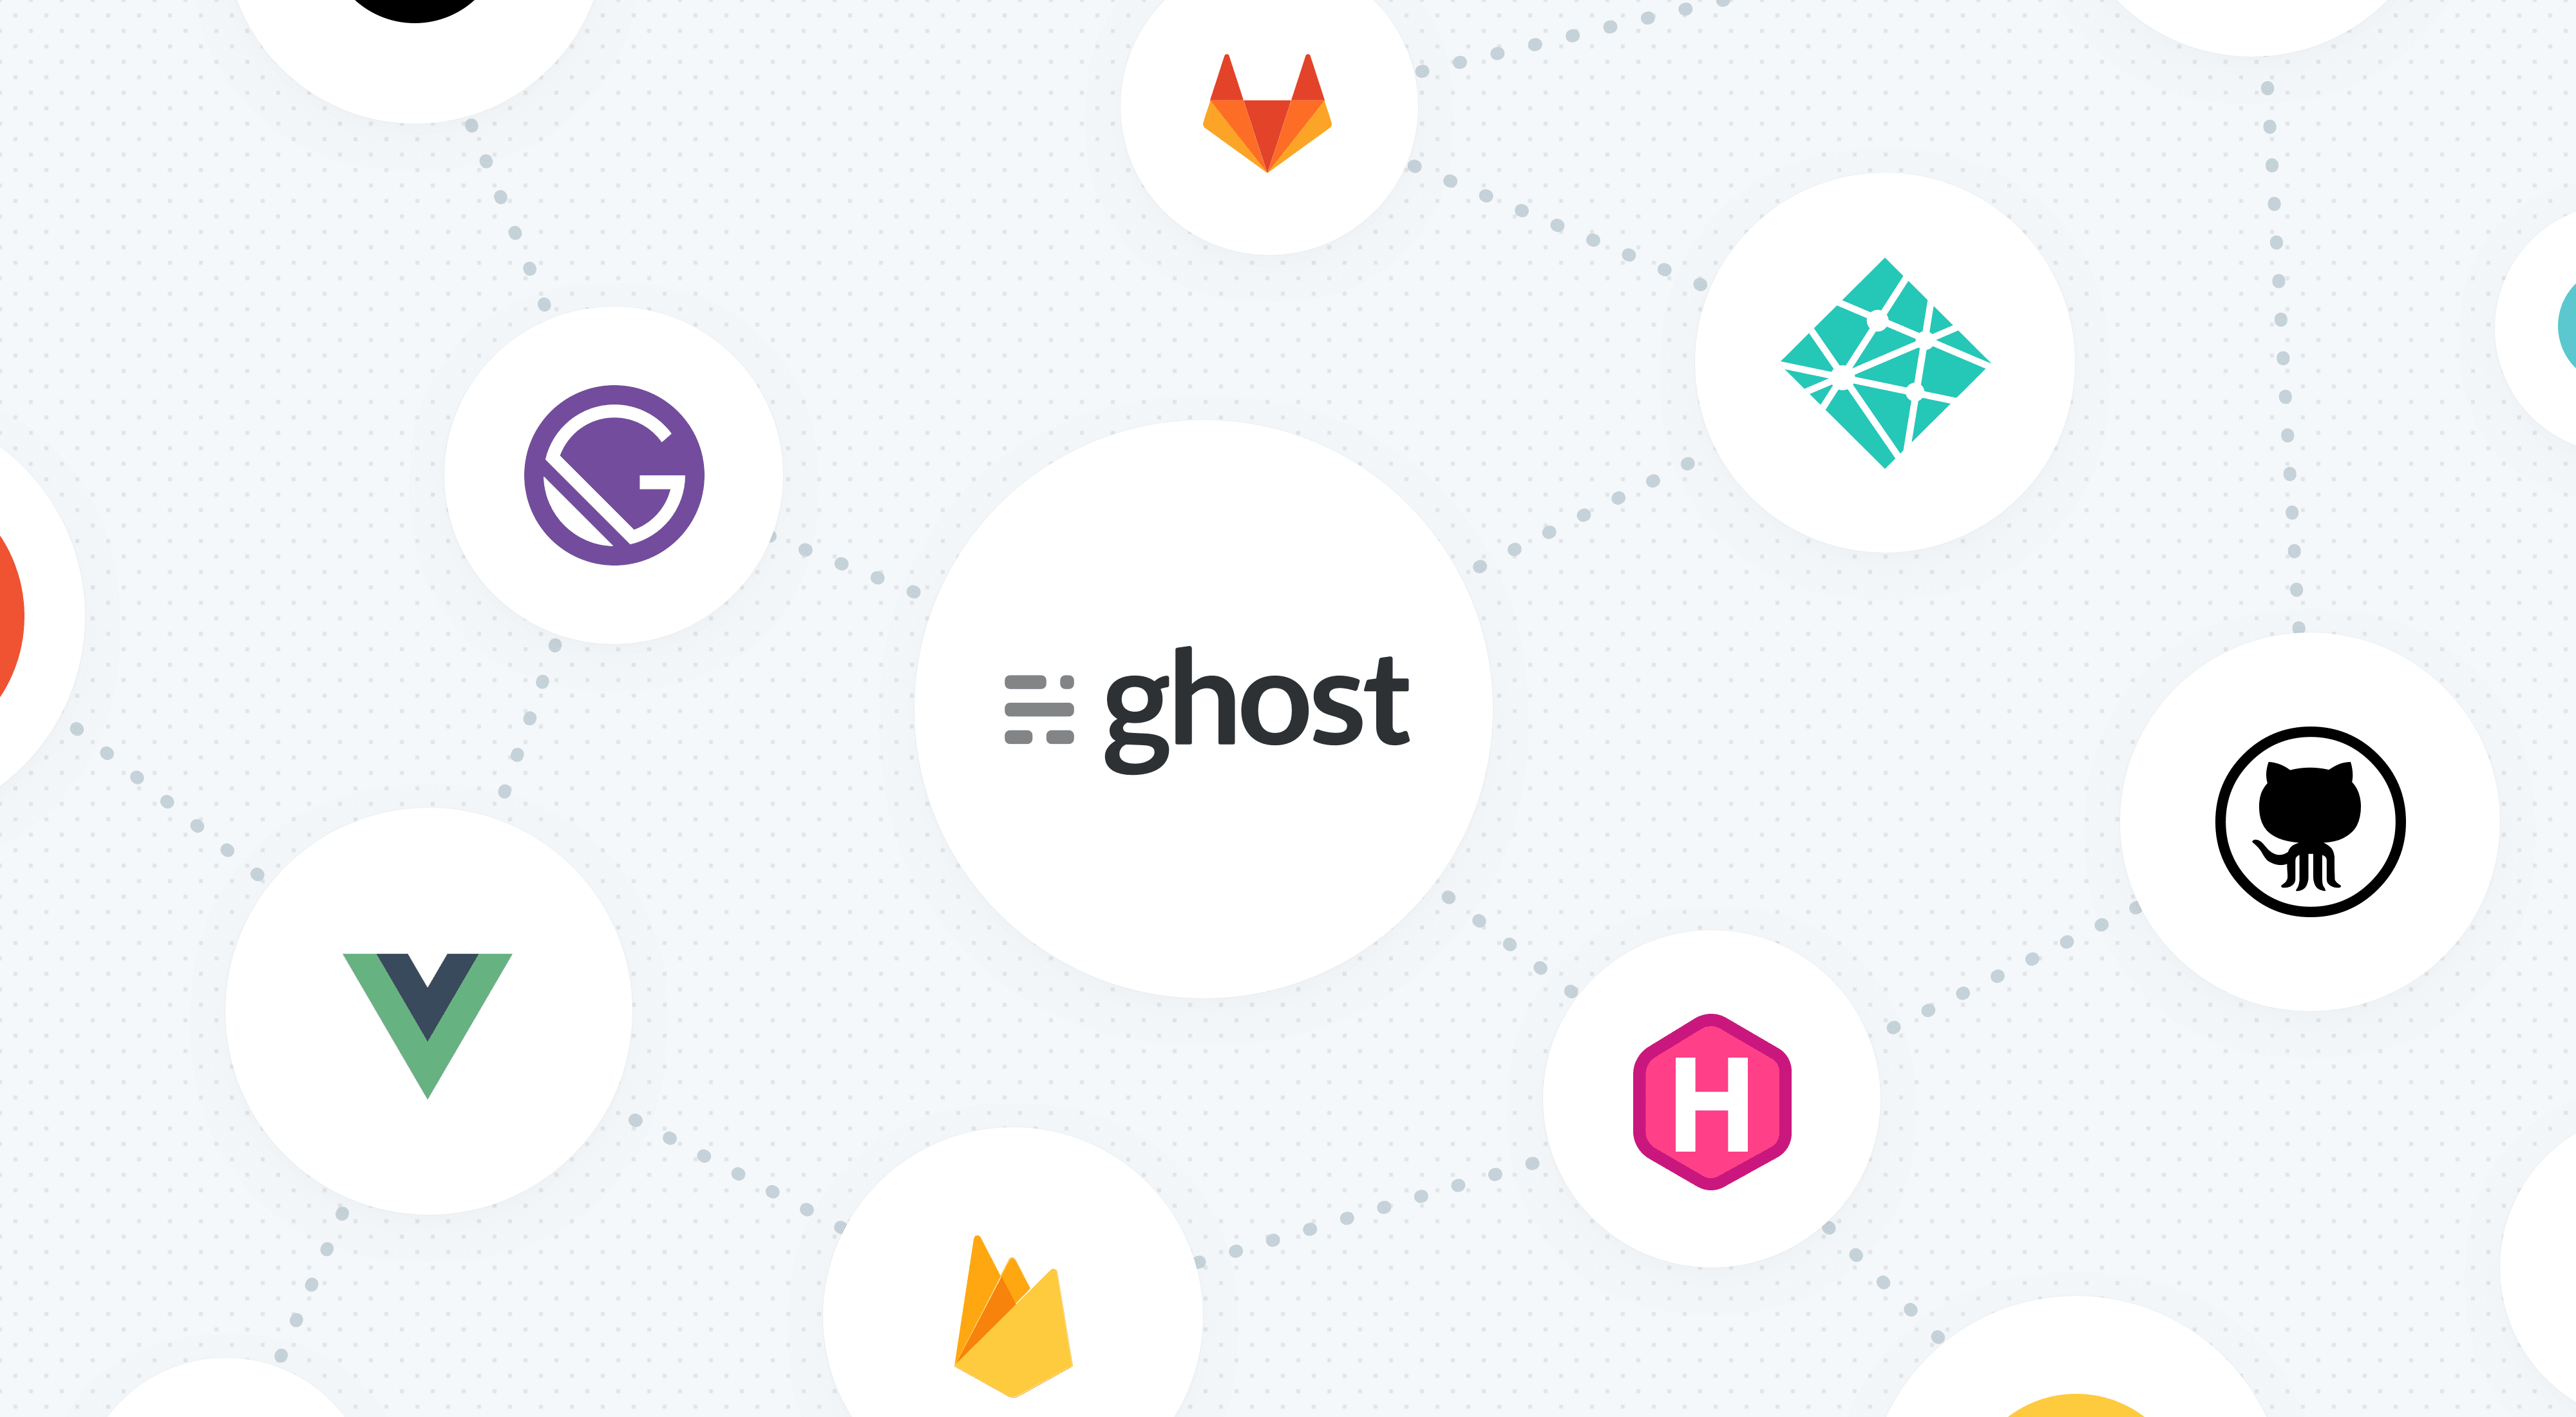 emTr0.dev is now powered by Ghost, Heroku, Gatsby and Netlify - Work in progress